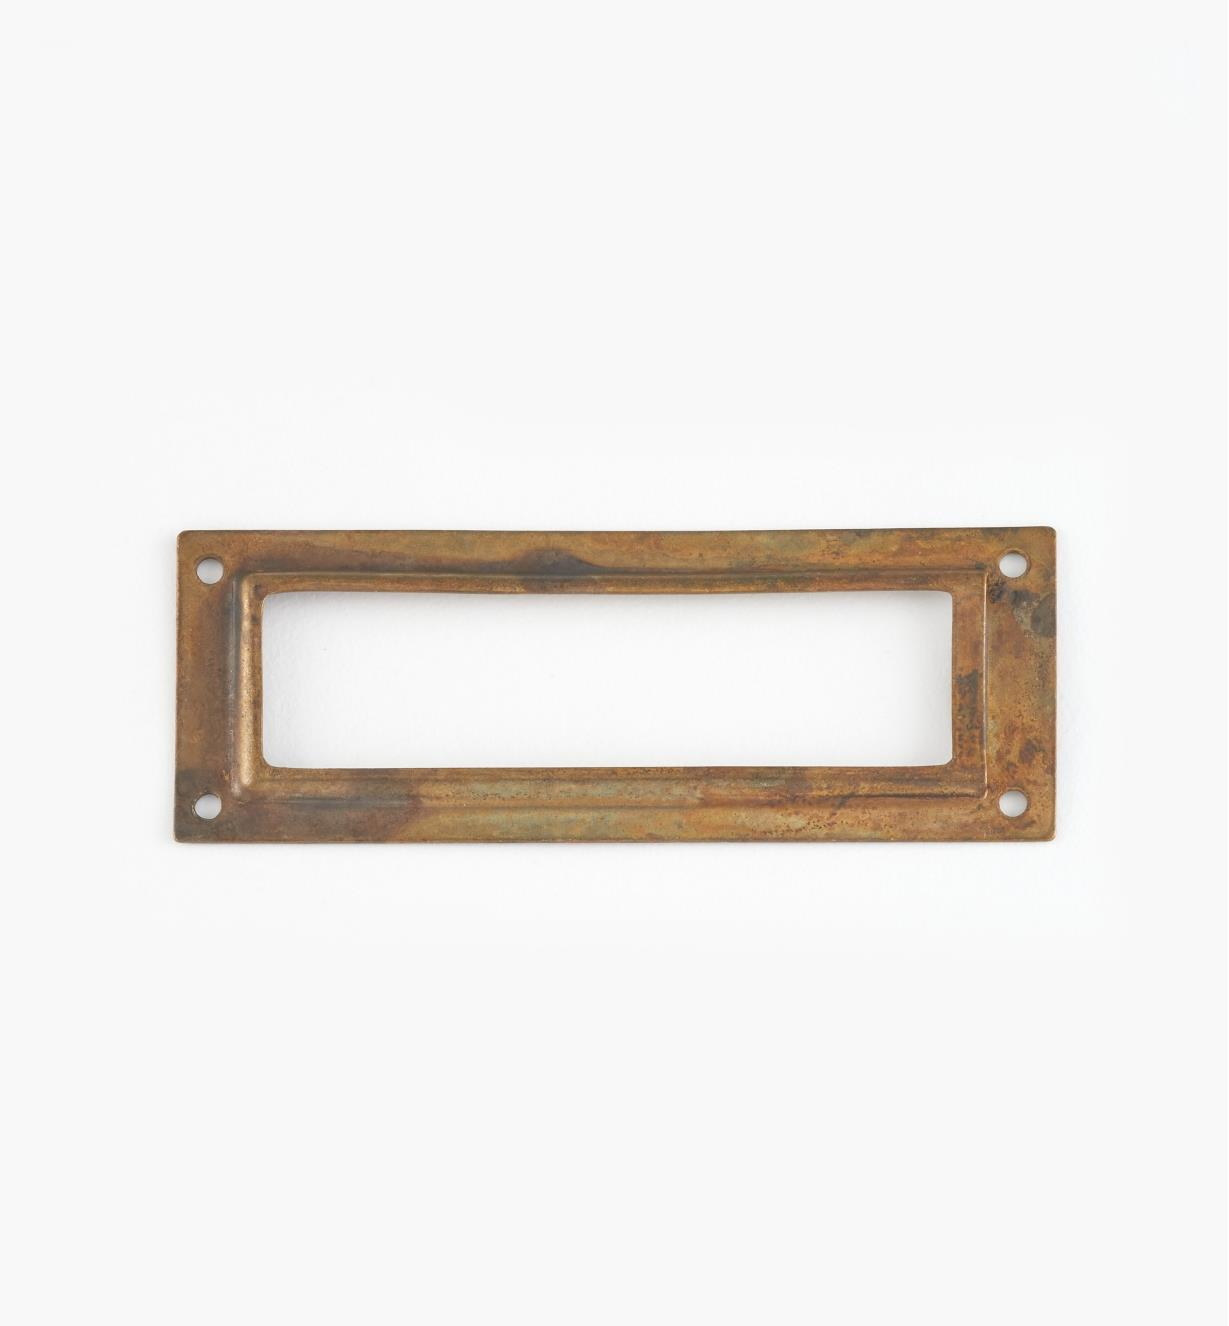 01A5790 - Old Brass Label Holder